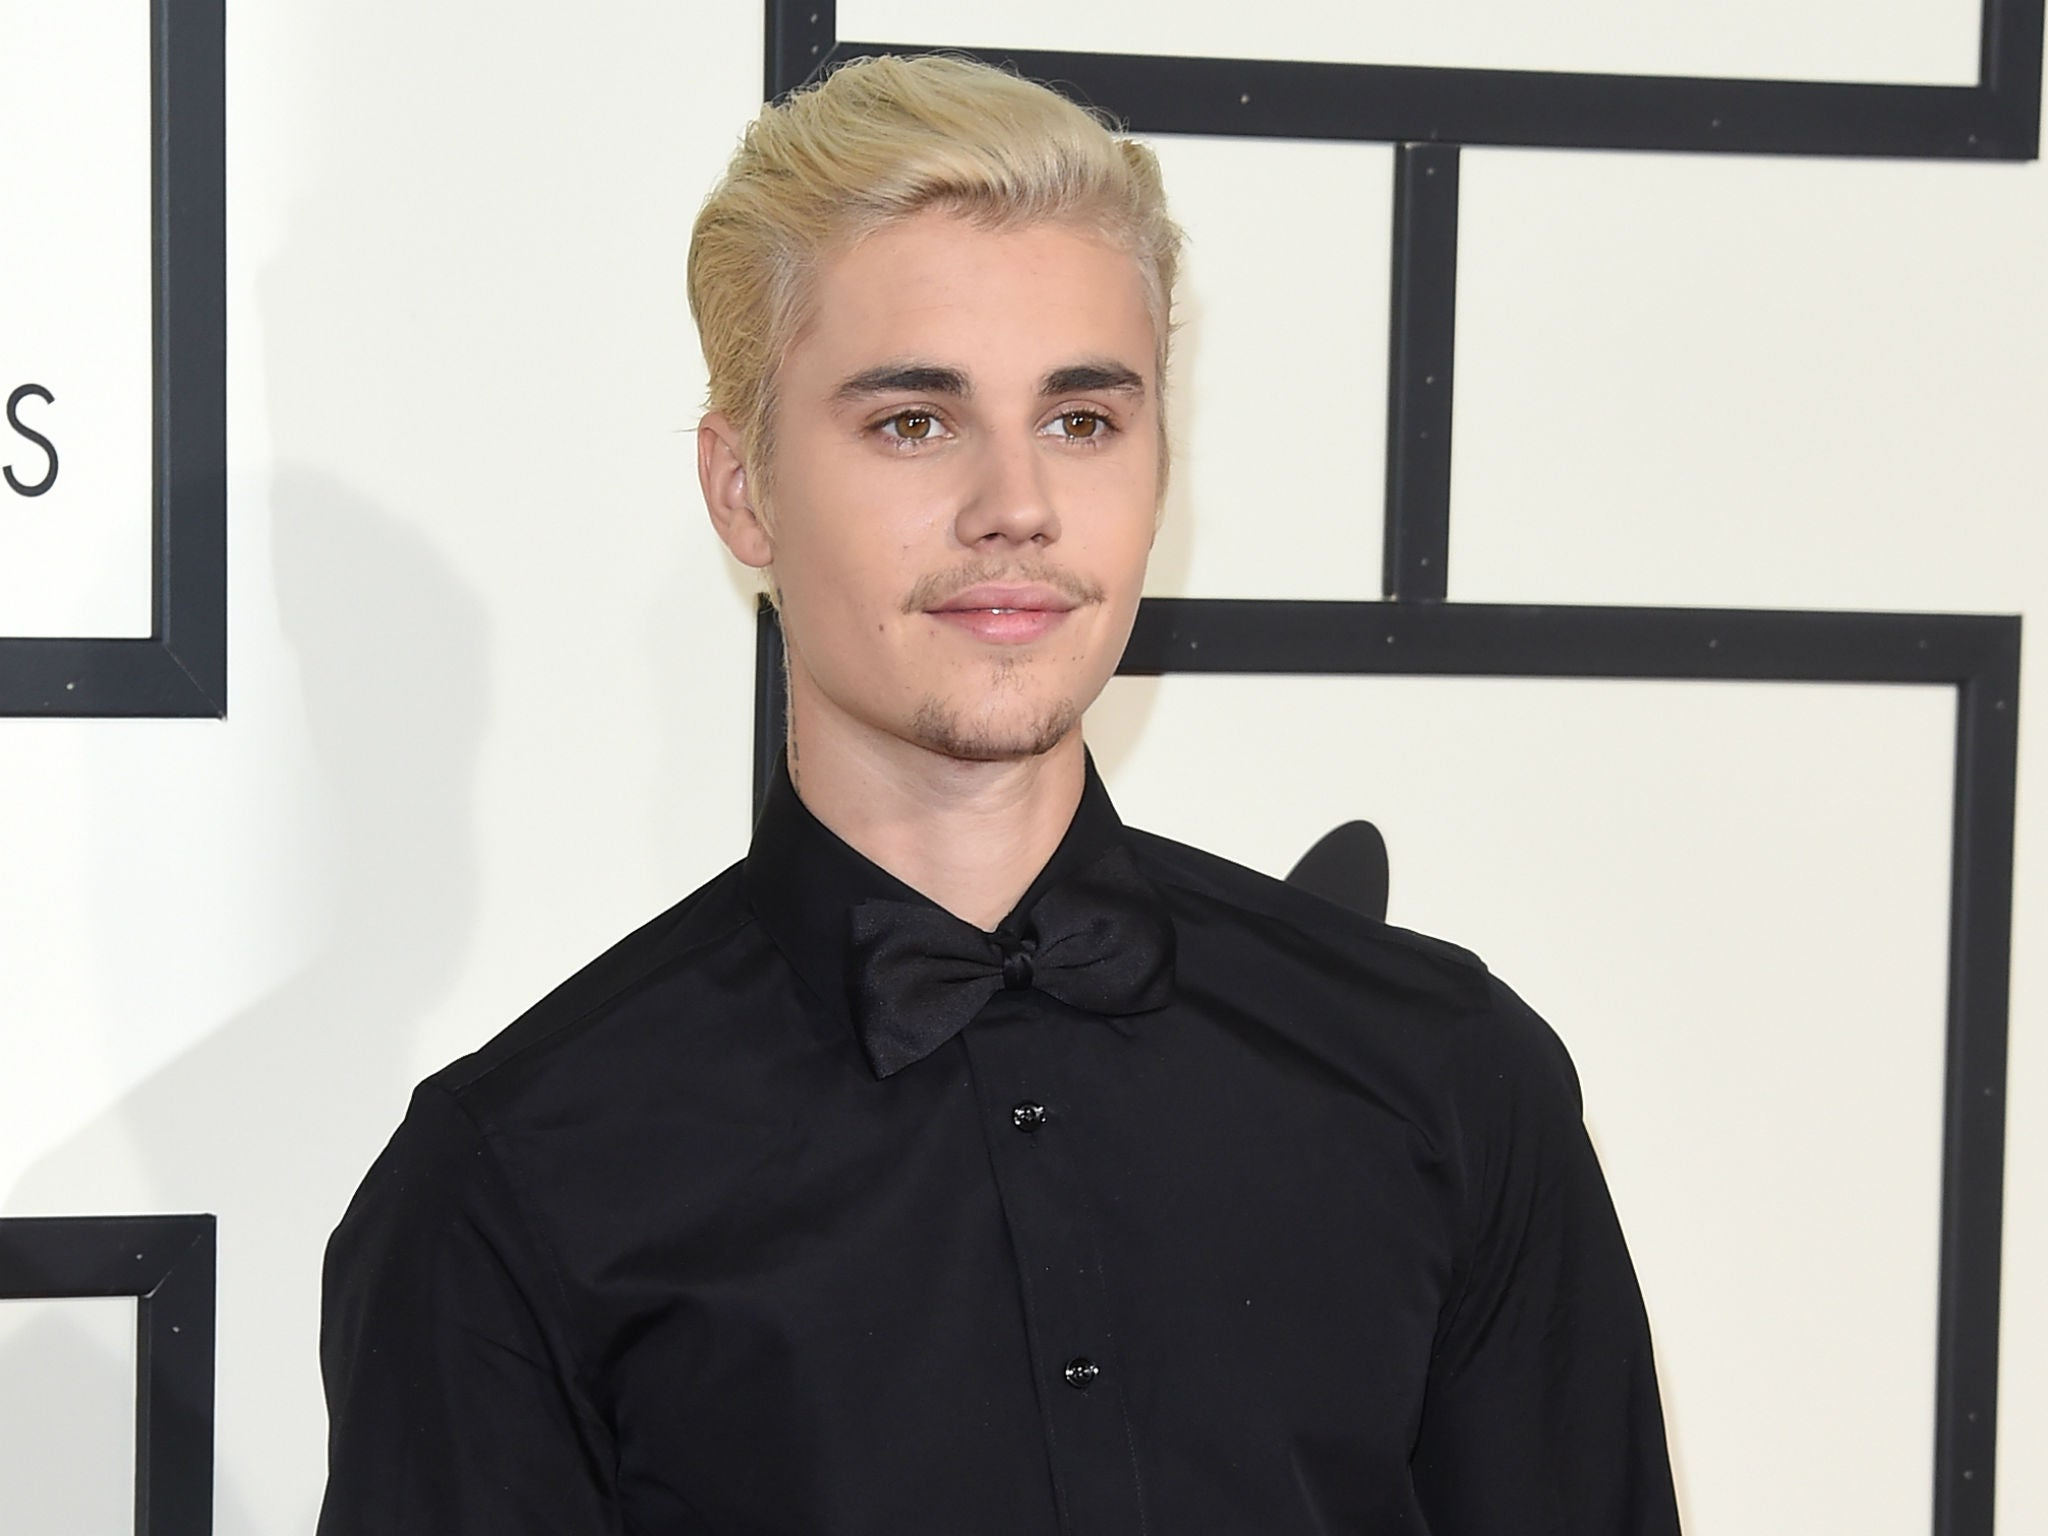 Justin Bieber Accused Of Appropriating Black Culture With